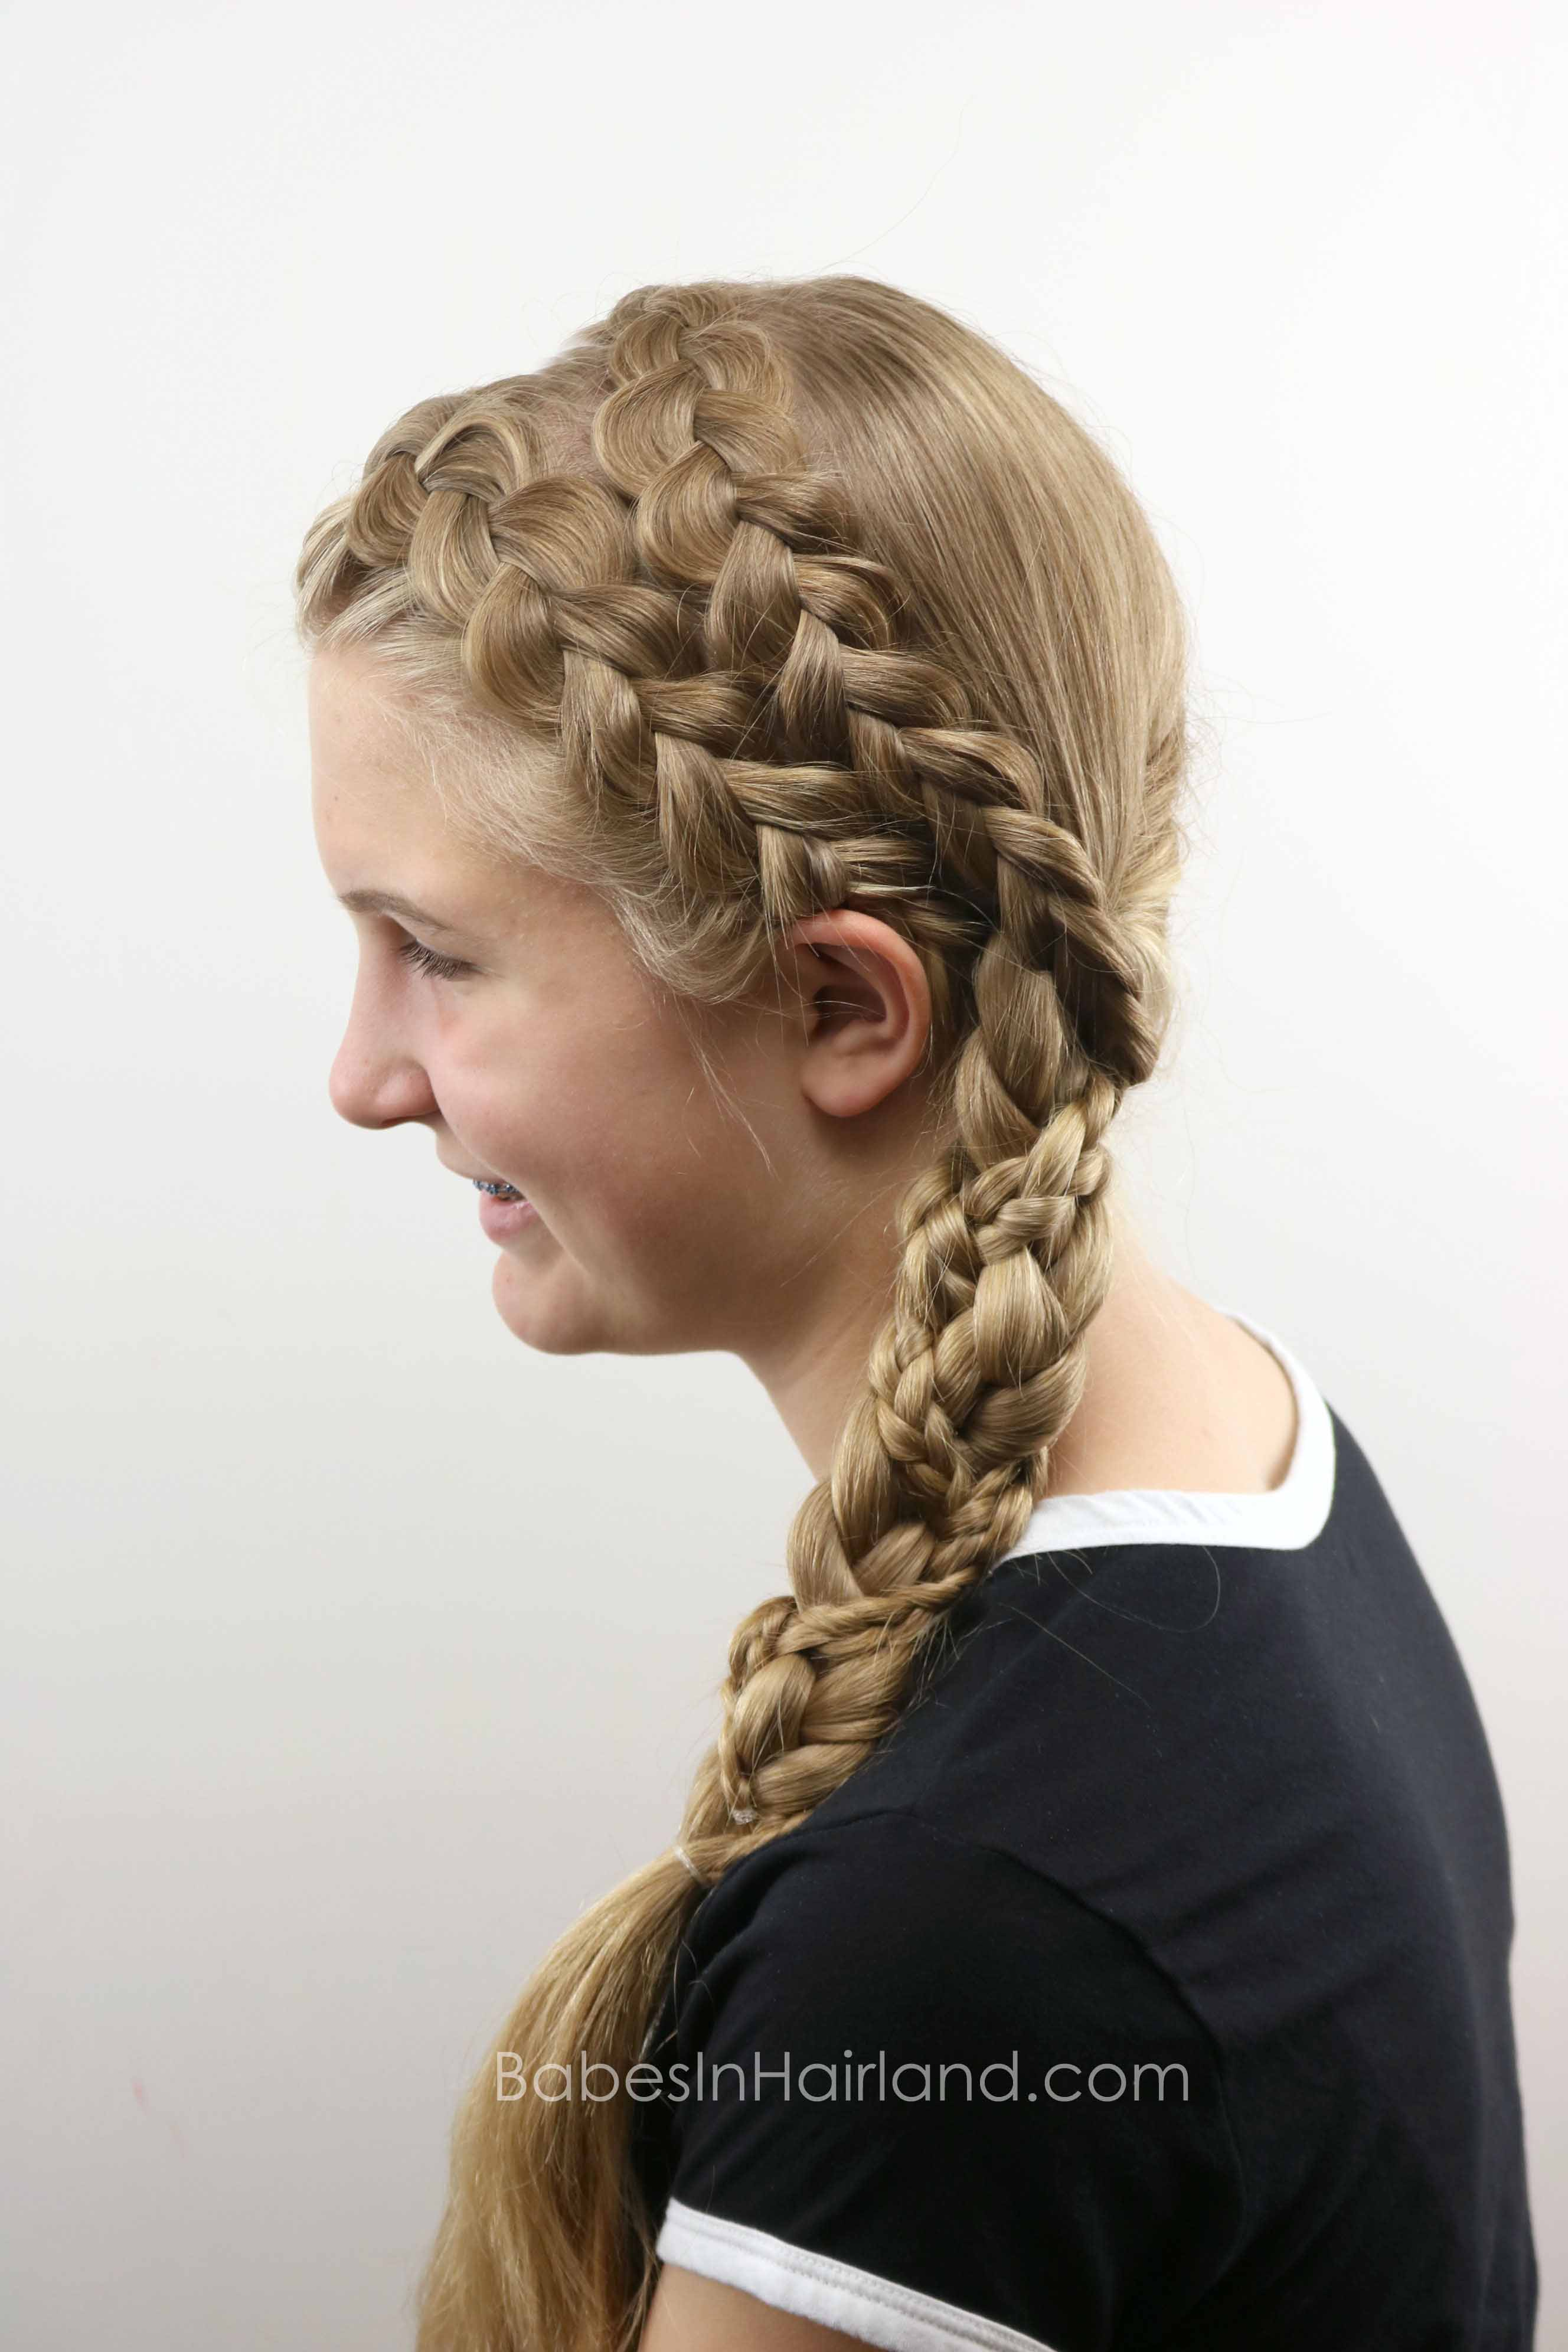 Double Dutch Braided Braid Babes In Hairland